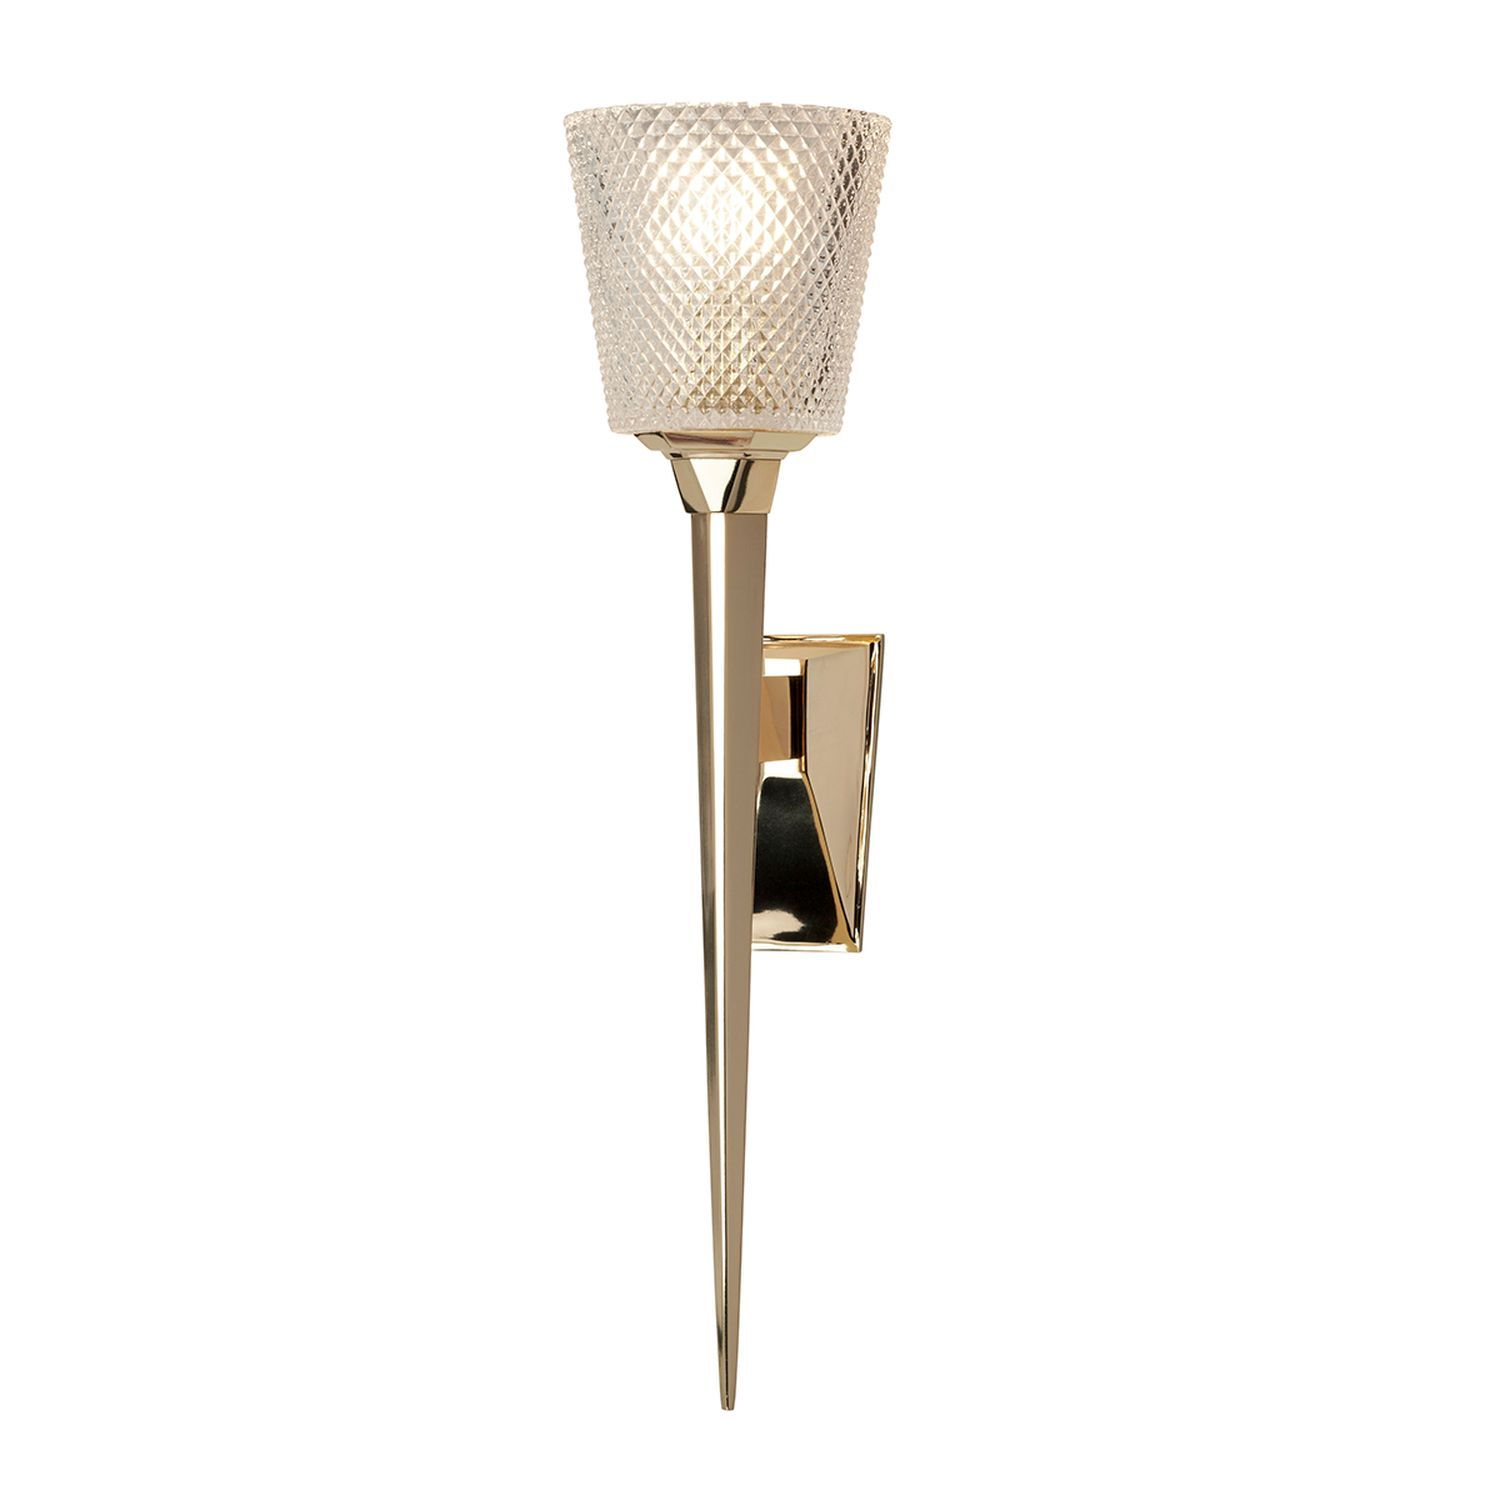 LED Badezimmerleuchte Messing in Gold IP44 rostfrei PIA